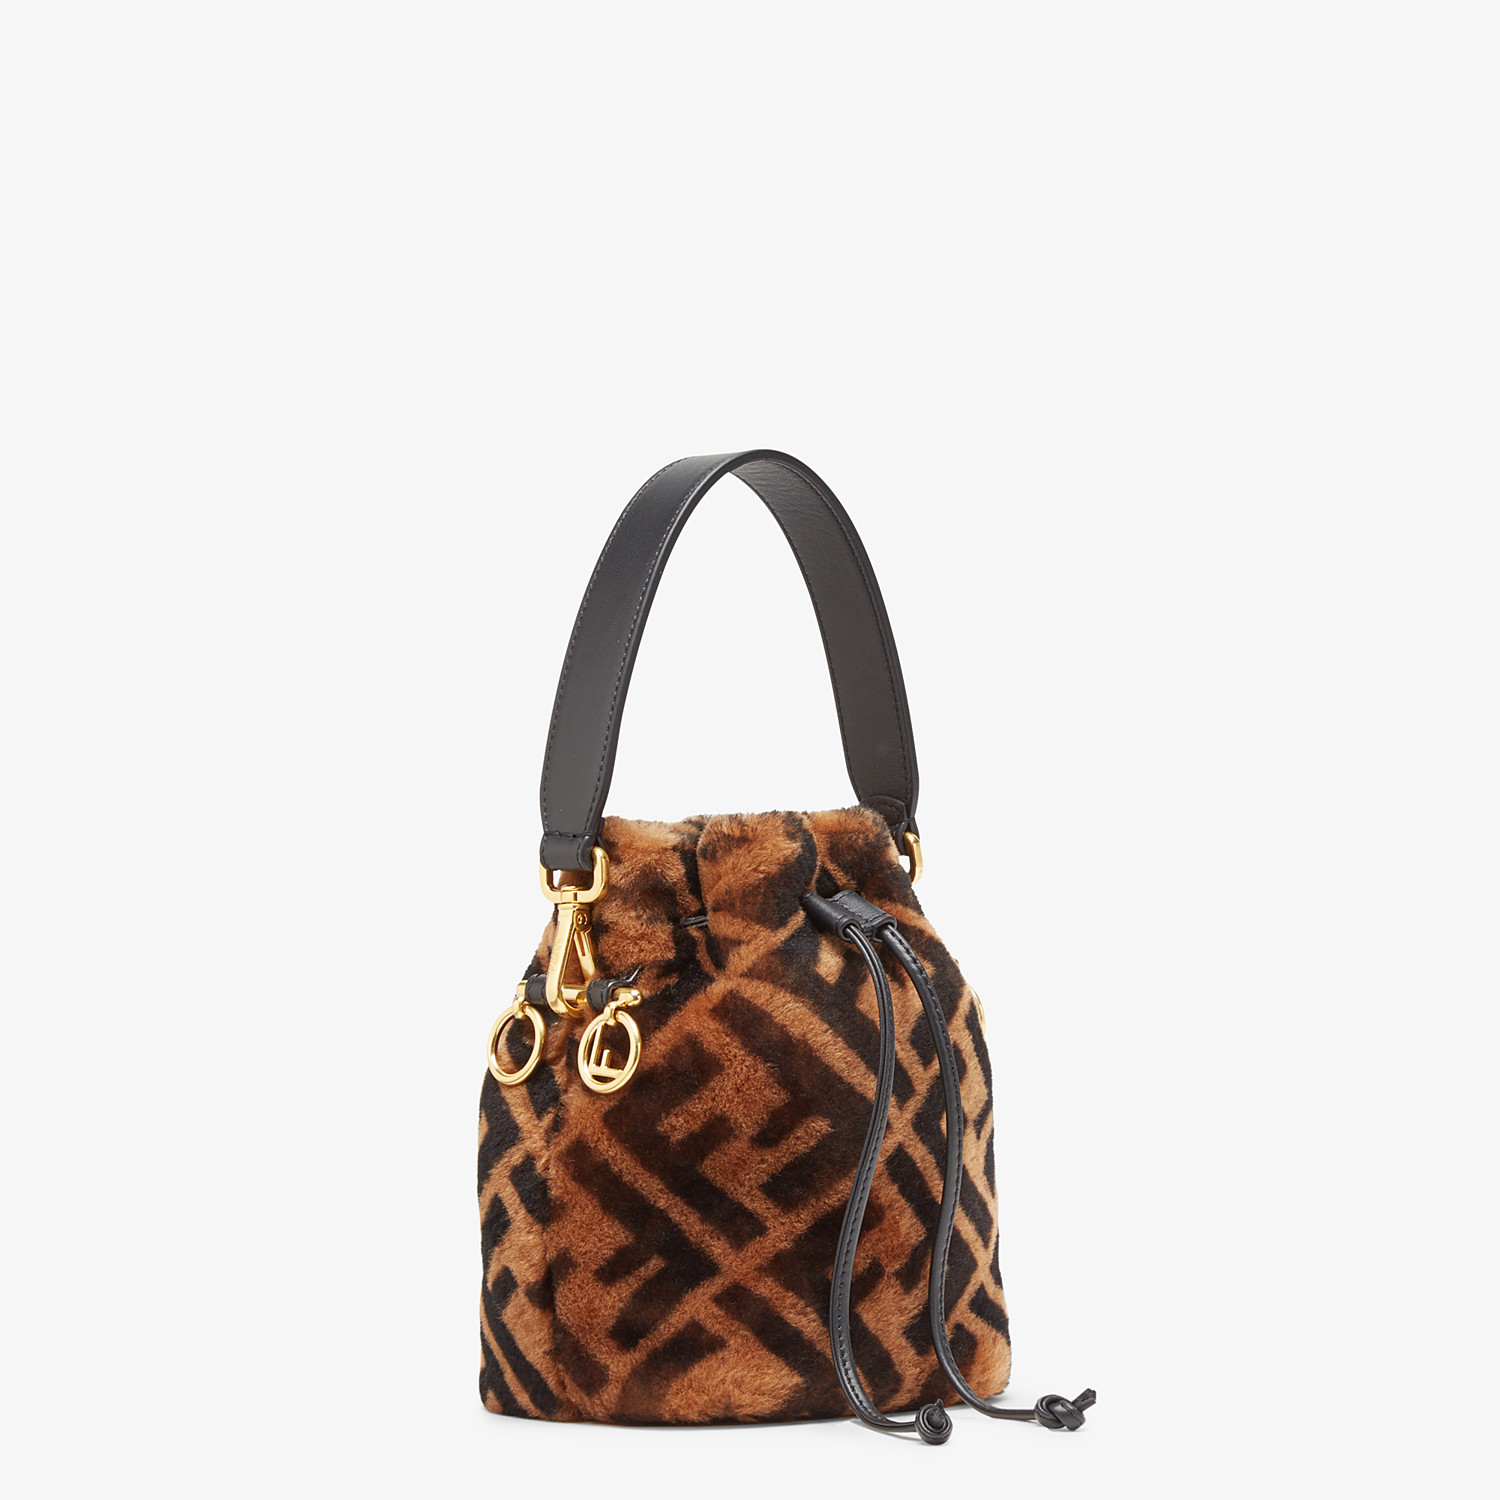 FENDI MON TRESOR - Mini-bag in brown sheepskin - view 3 detail